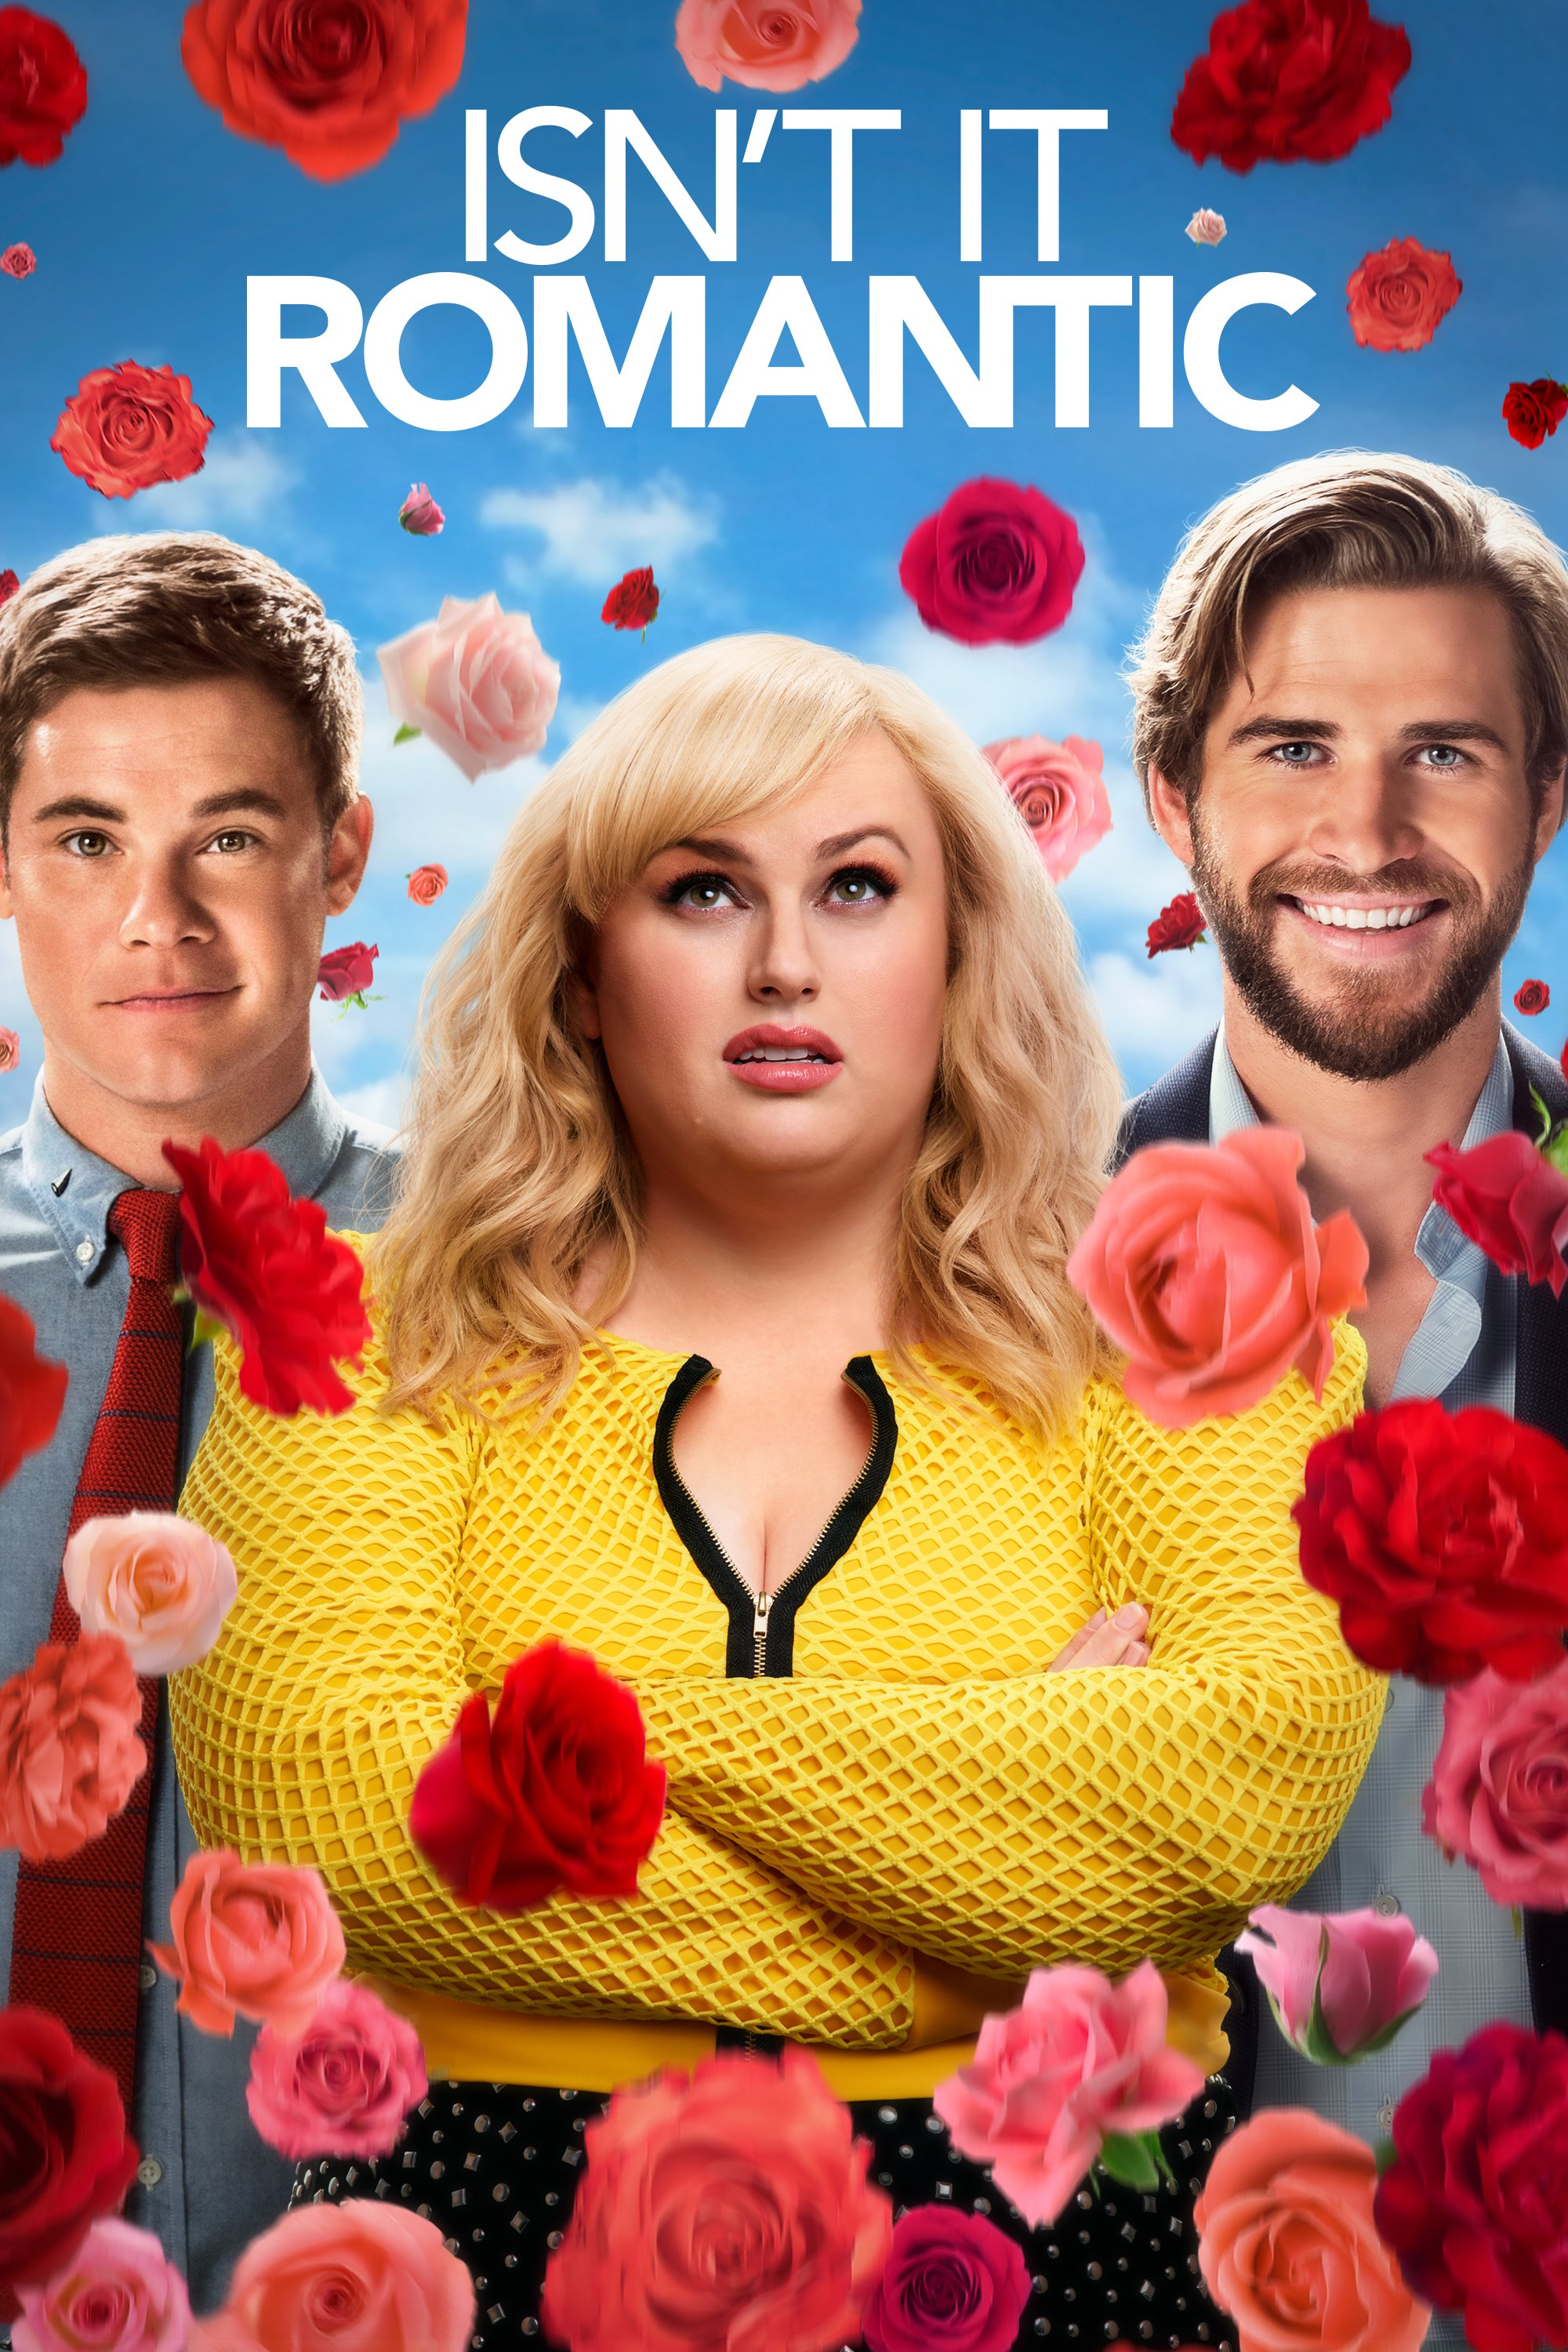 Isn't It Romantic | Buy, Rent or Watch on FandangoNOW